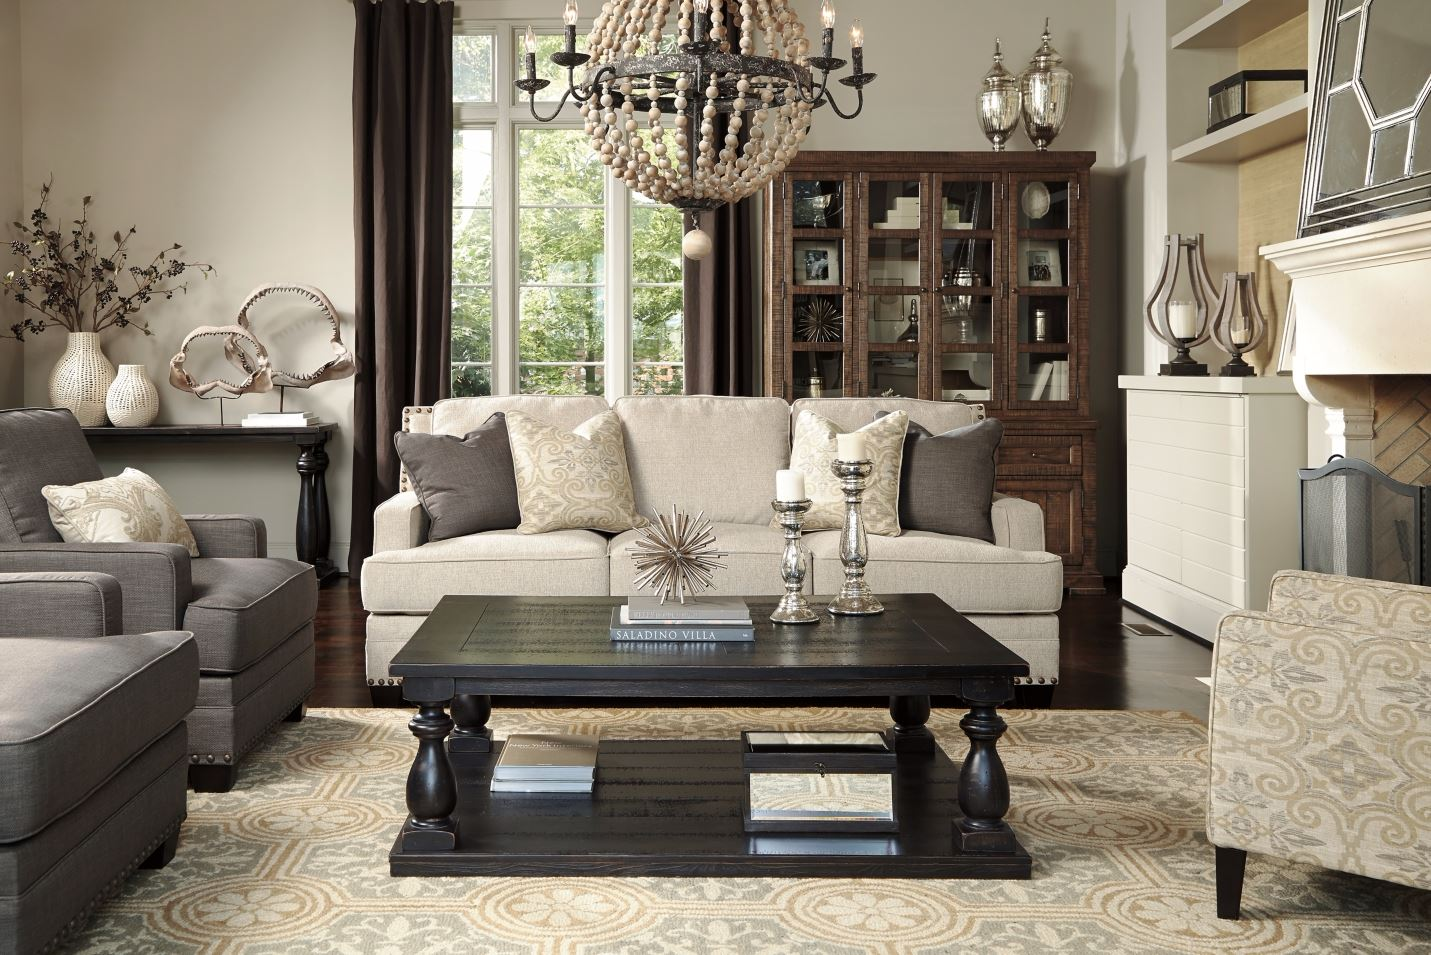 Nice Ashley Furniture HomeStore Pictures Gallery